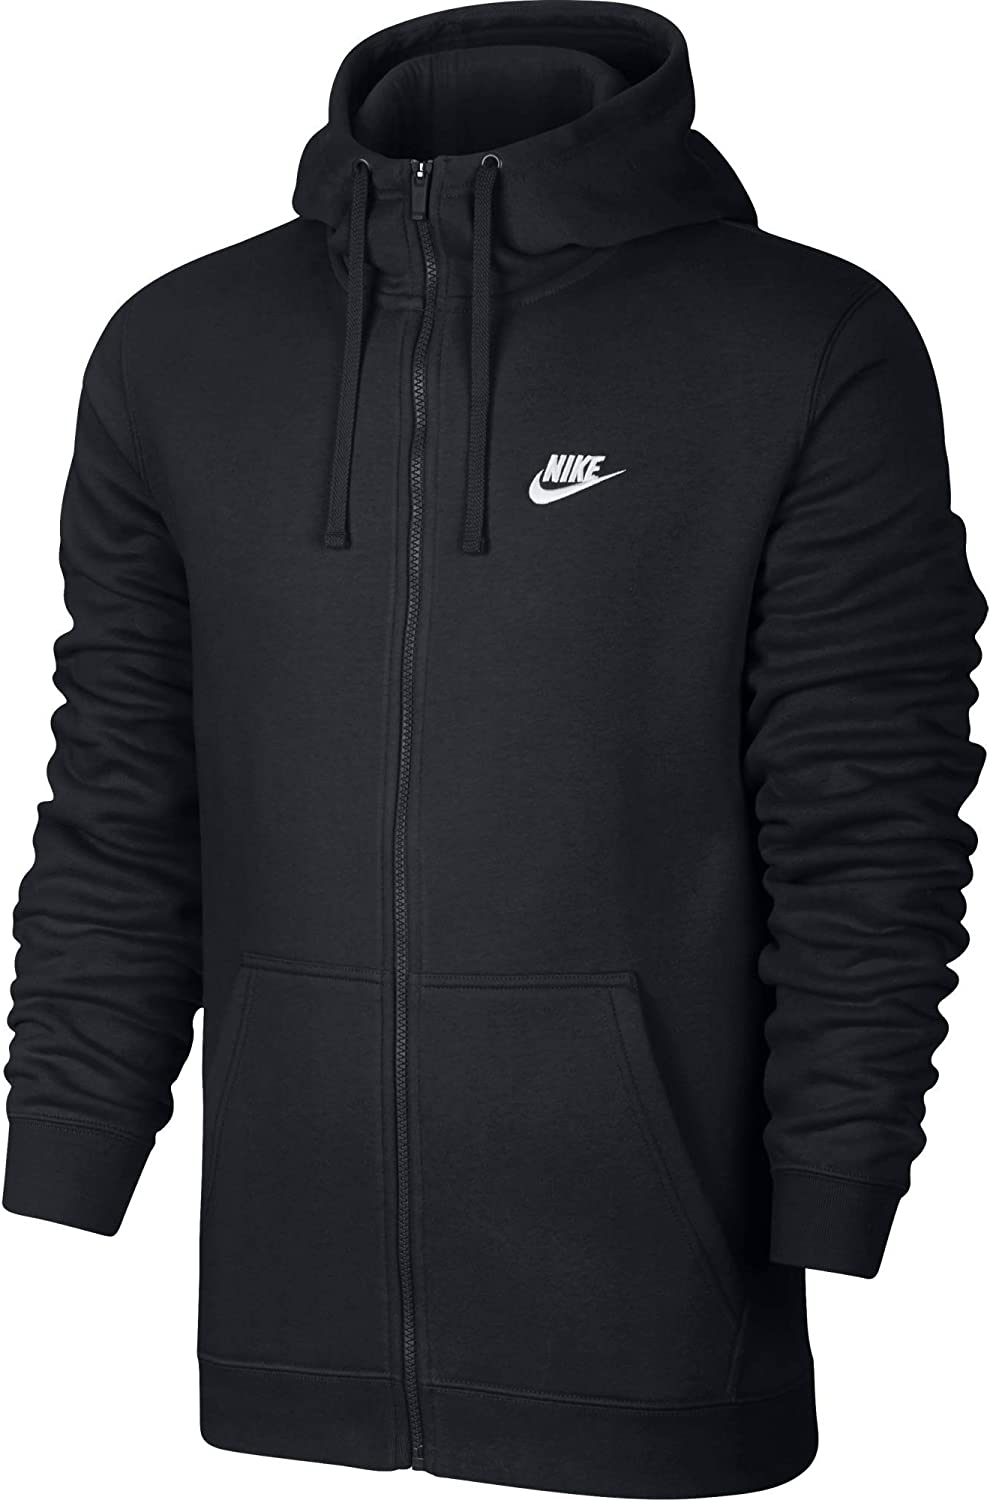 Broma Víspera de Todos los Santos obtener  Amazon.com: Men's Nike Sportswear Club Full Zip-Up Hoodie: Nike: Clothing